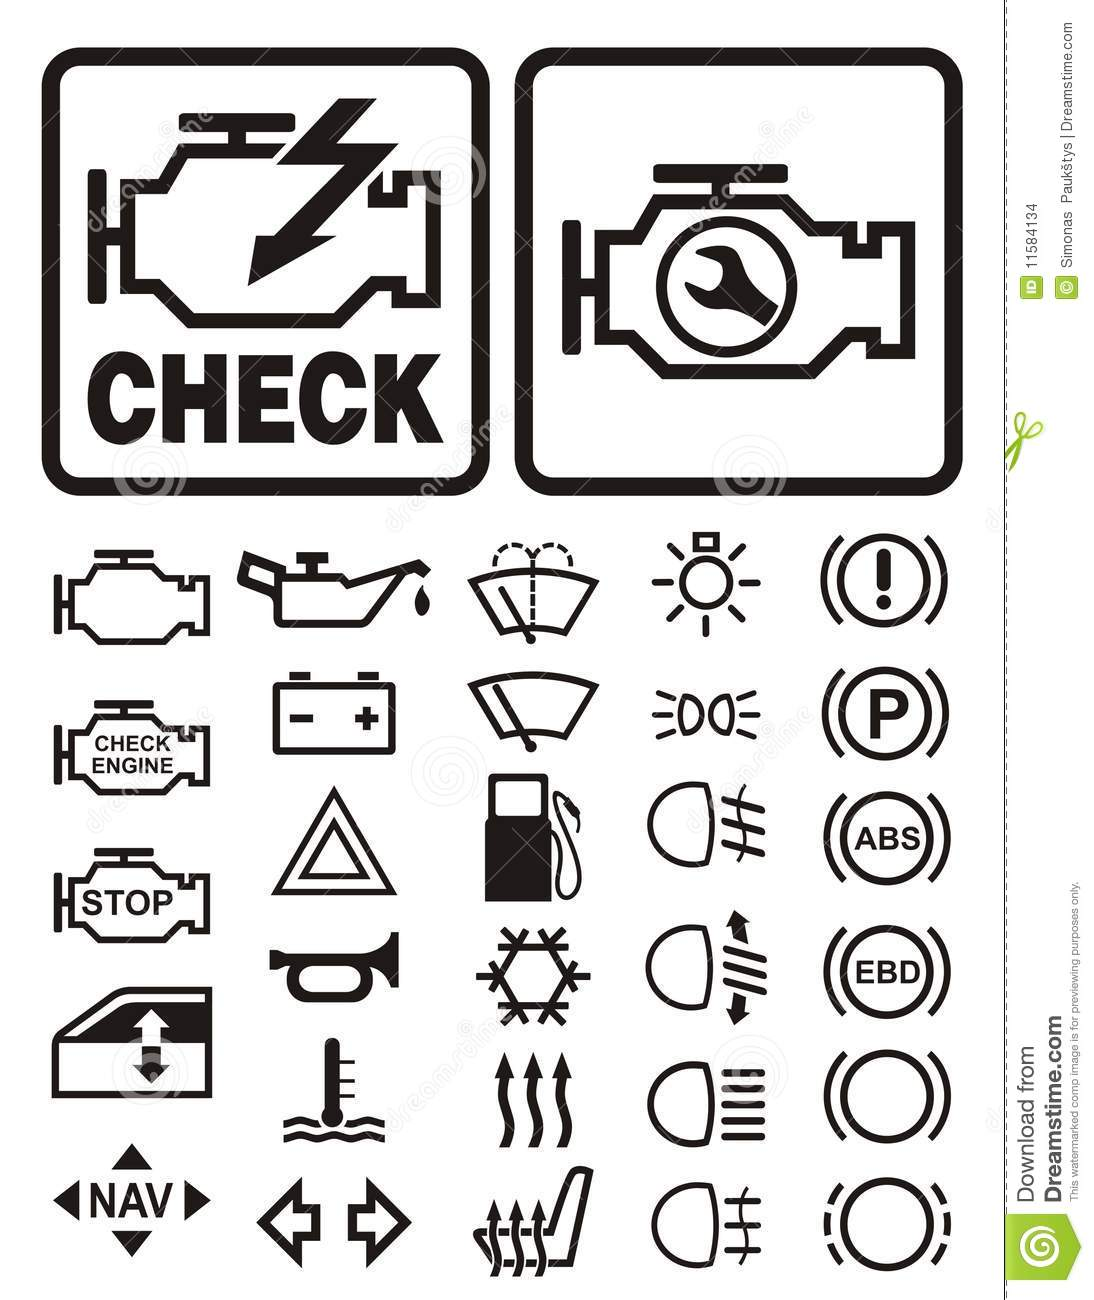 More similar stock images of ` Car warning symbols `